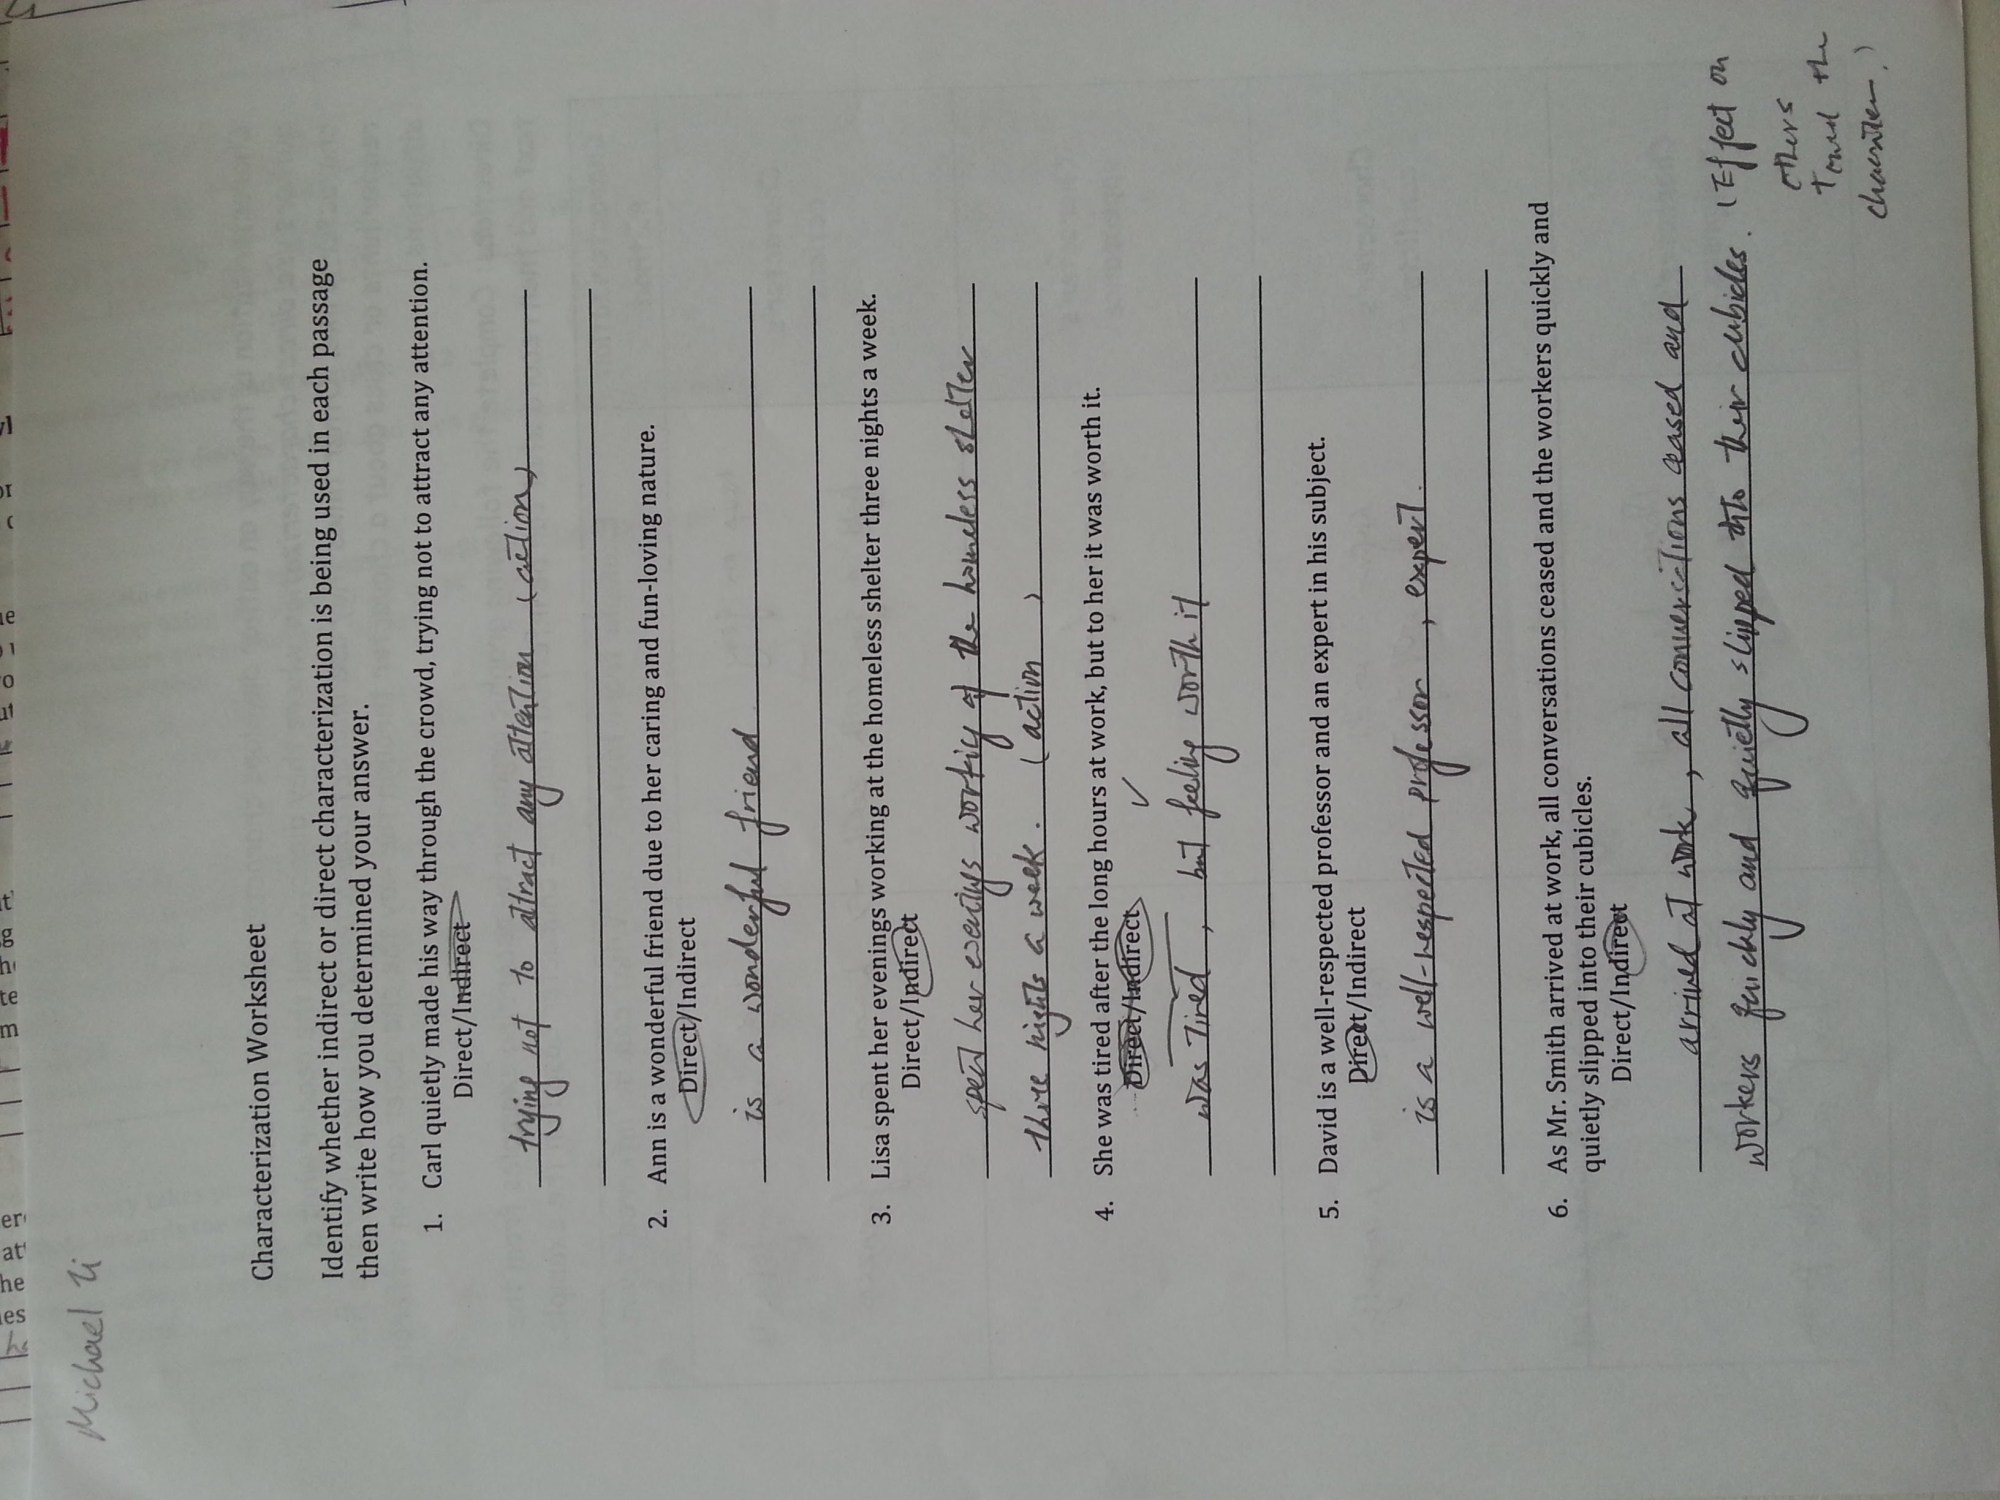 hight resolution of Characterization Worksheet 1 Answers - Worksheet List